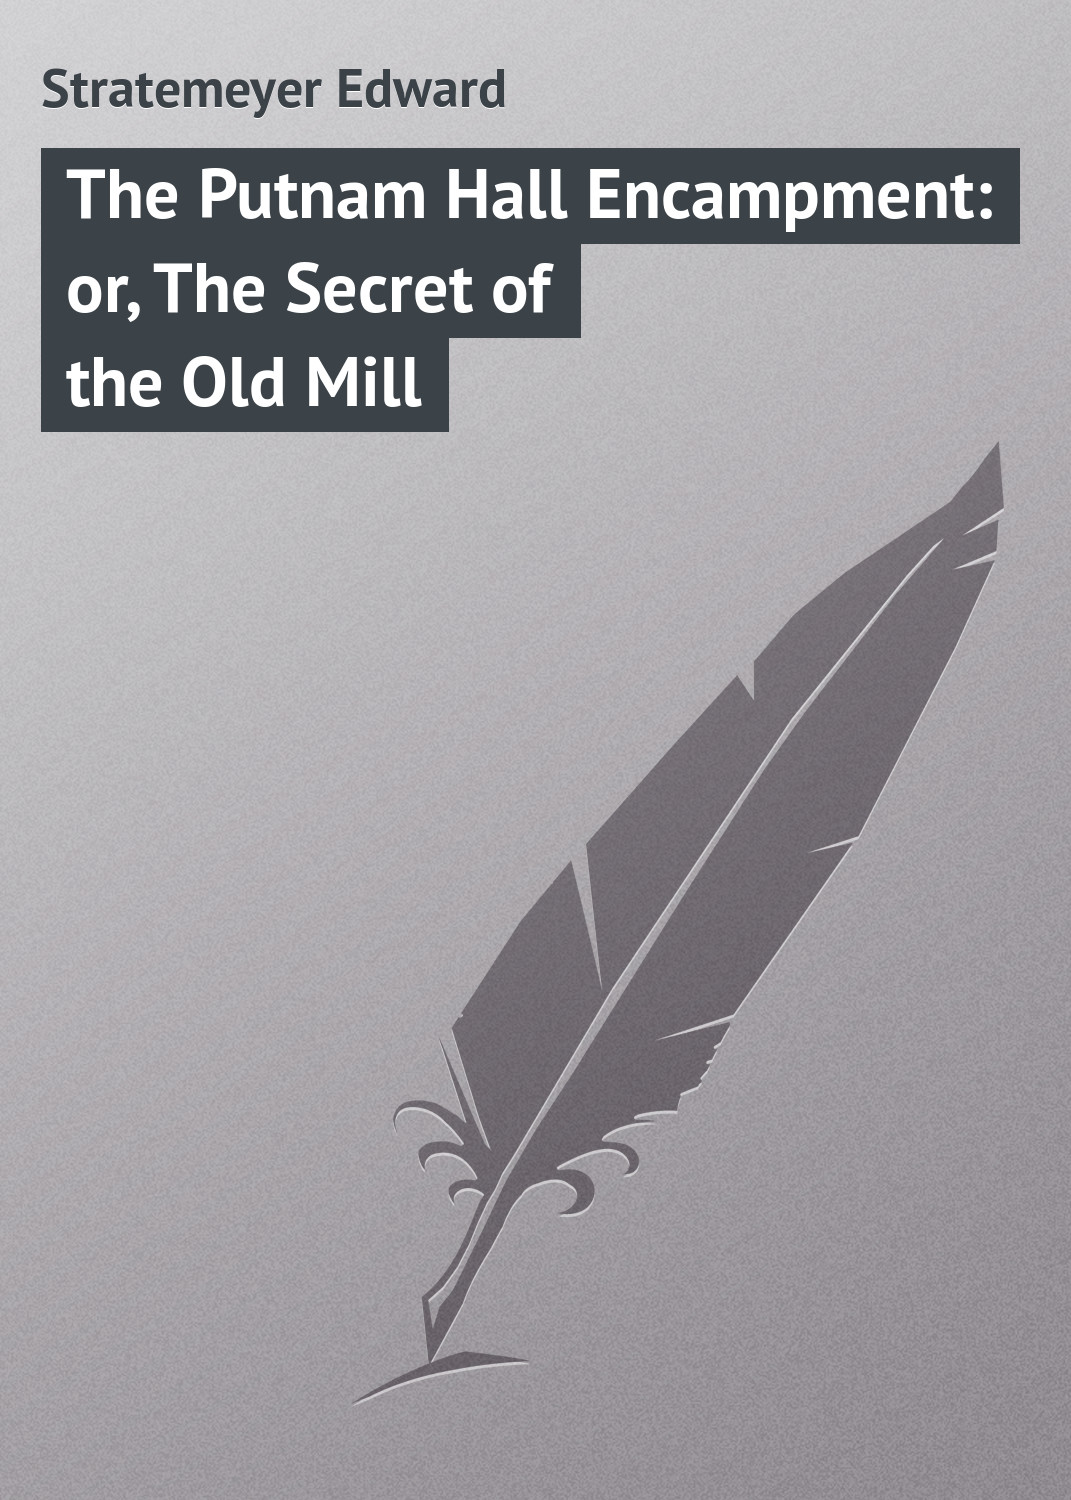 Stratemeyer Edward The Putnam Hall Encampment: or, The Secret of the Old Mill stratemeyer edward dave porter and the runaways or last days at oak hall